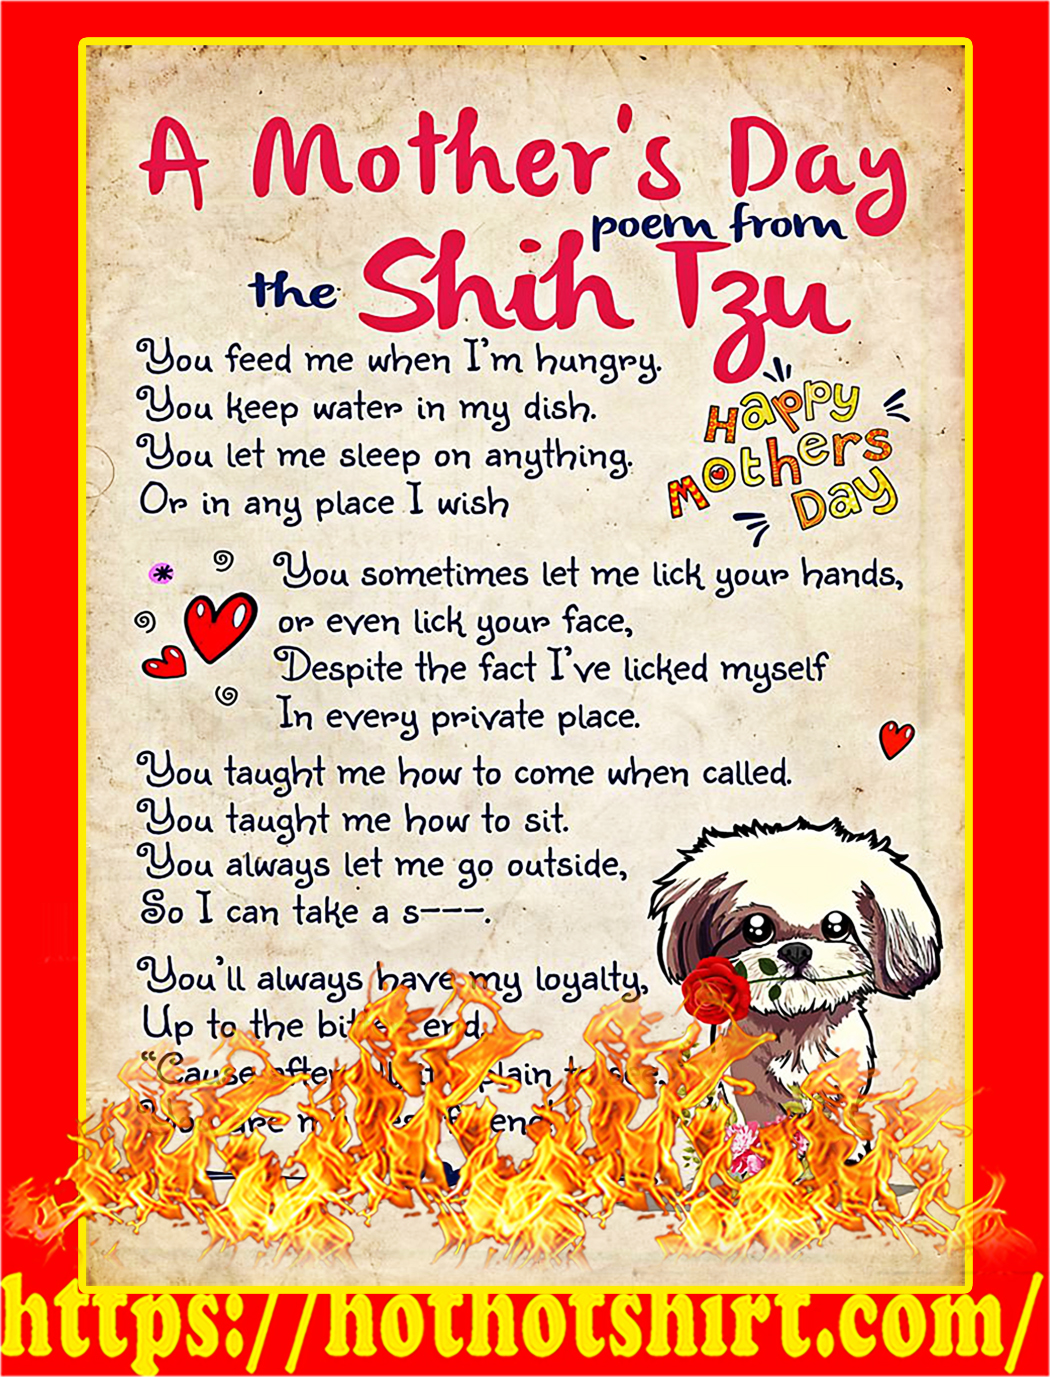 A mother's day poem from the shih tzu poster - A3